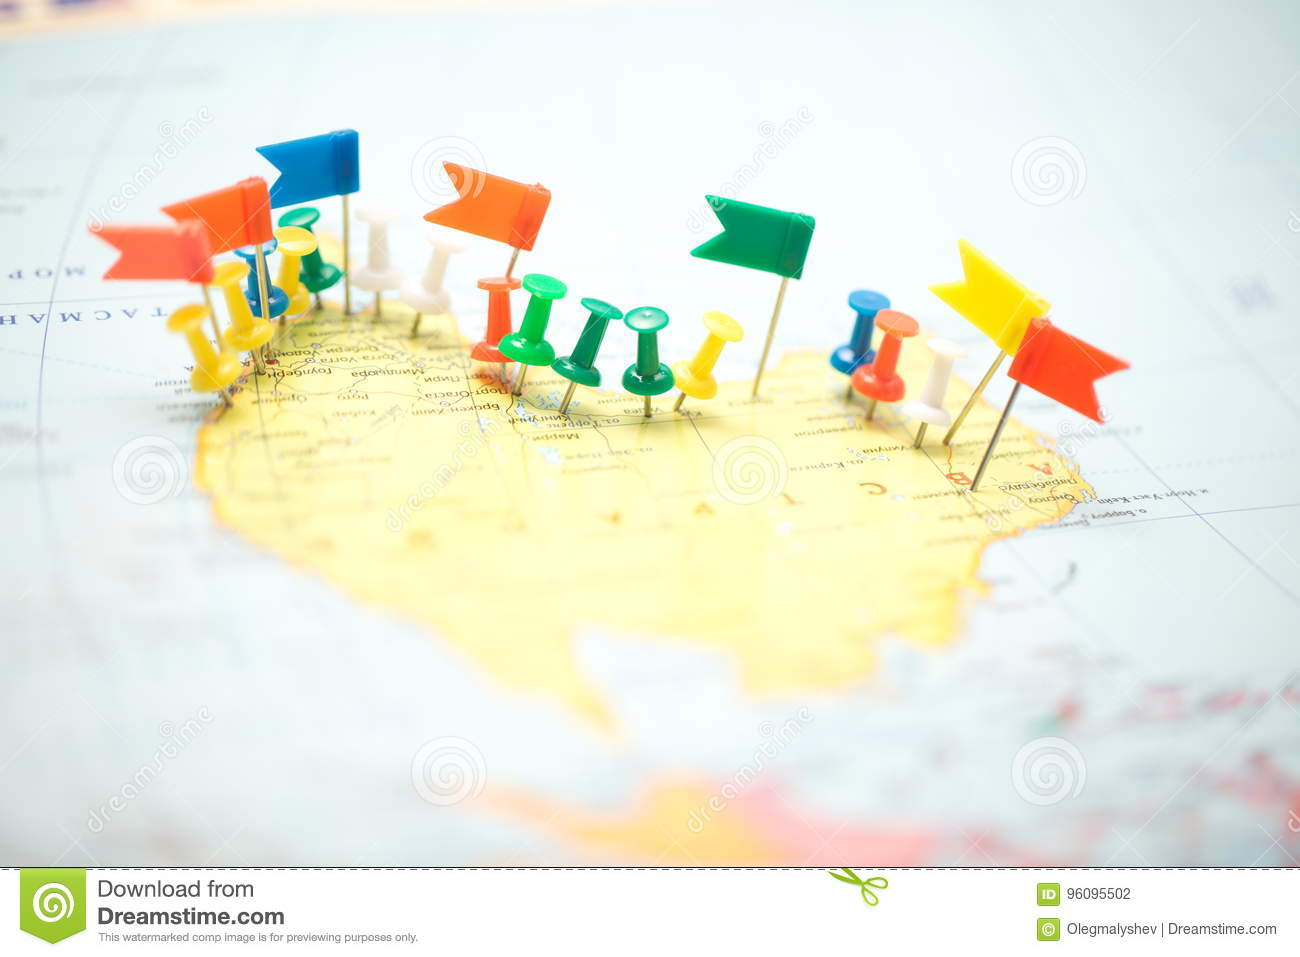 World map country flags marked pin city pinpoint stock photo image download world map country flags marked pin city pinpoint stock photo image of city gumiabroncs Choice Image